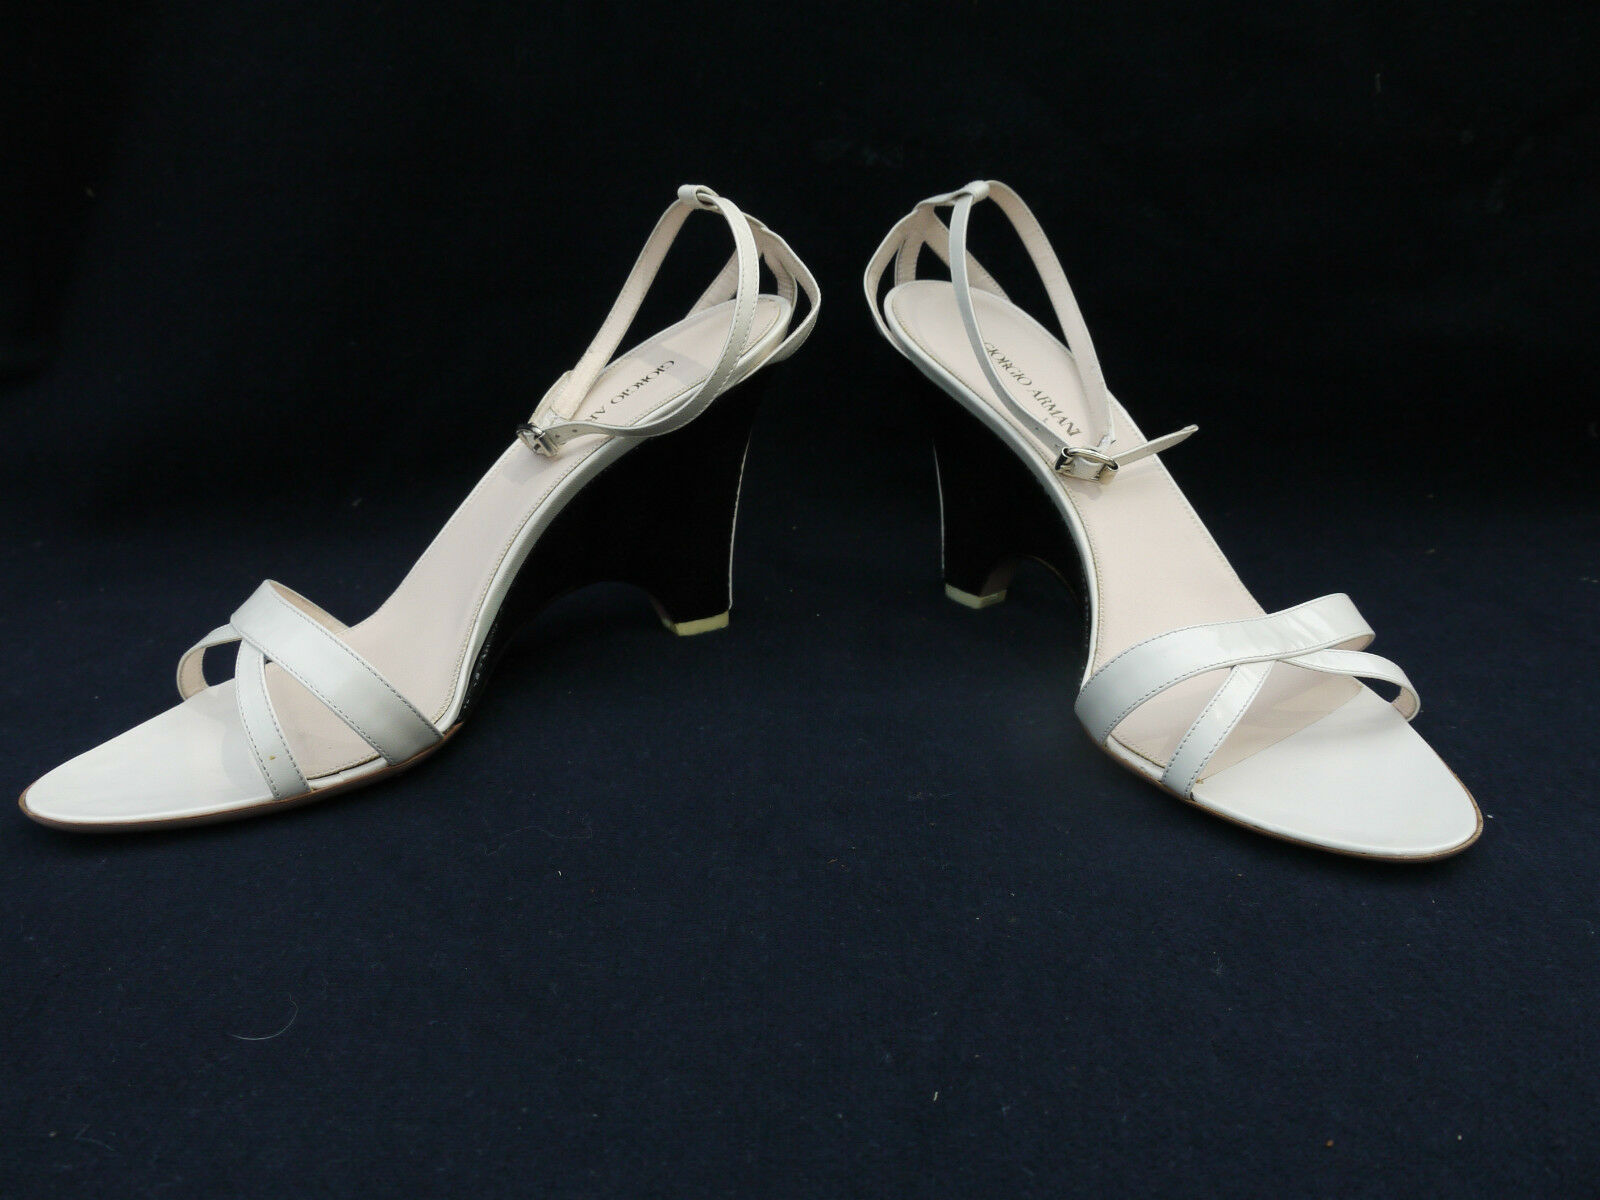 Giorgio Armani Women Wedges Heels shoes Size 39.5M Black and White BNIB